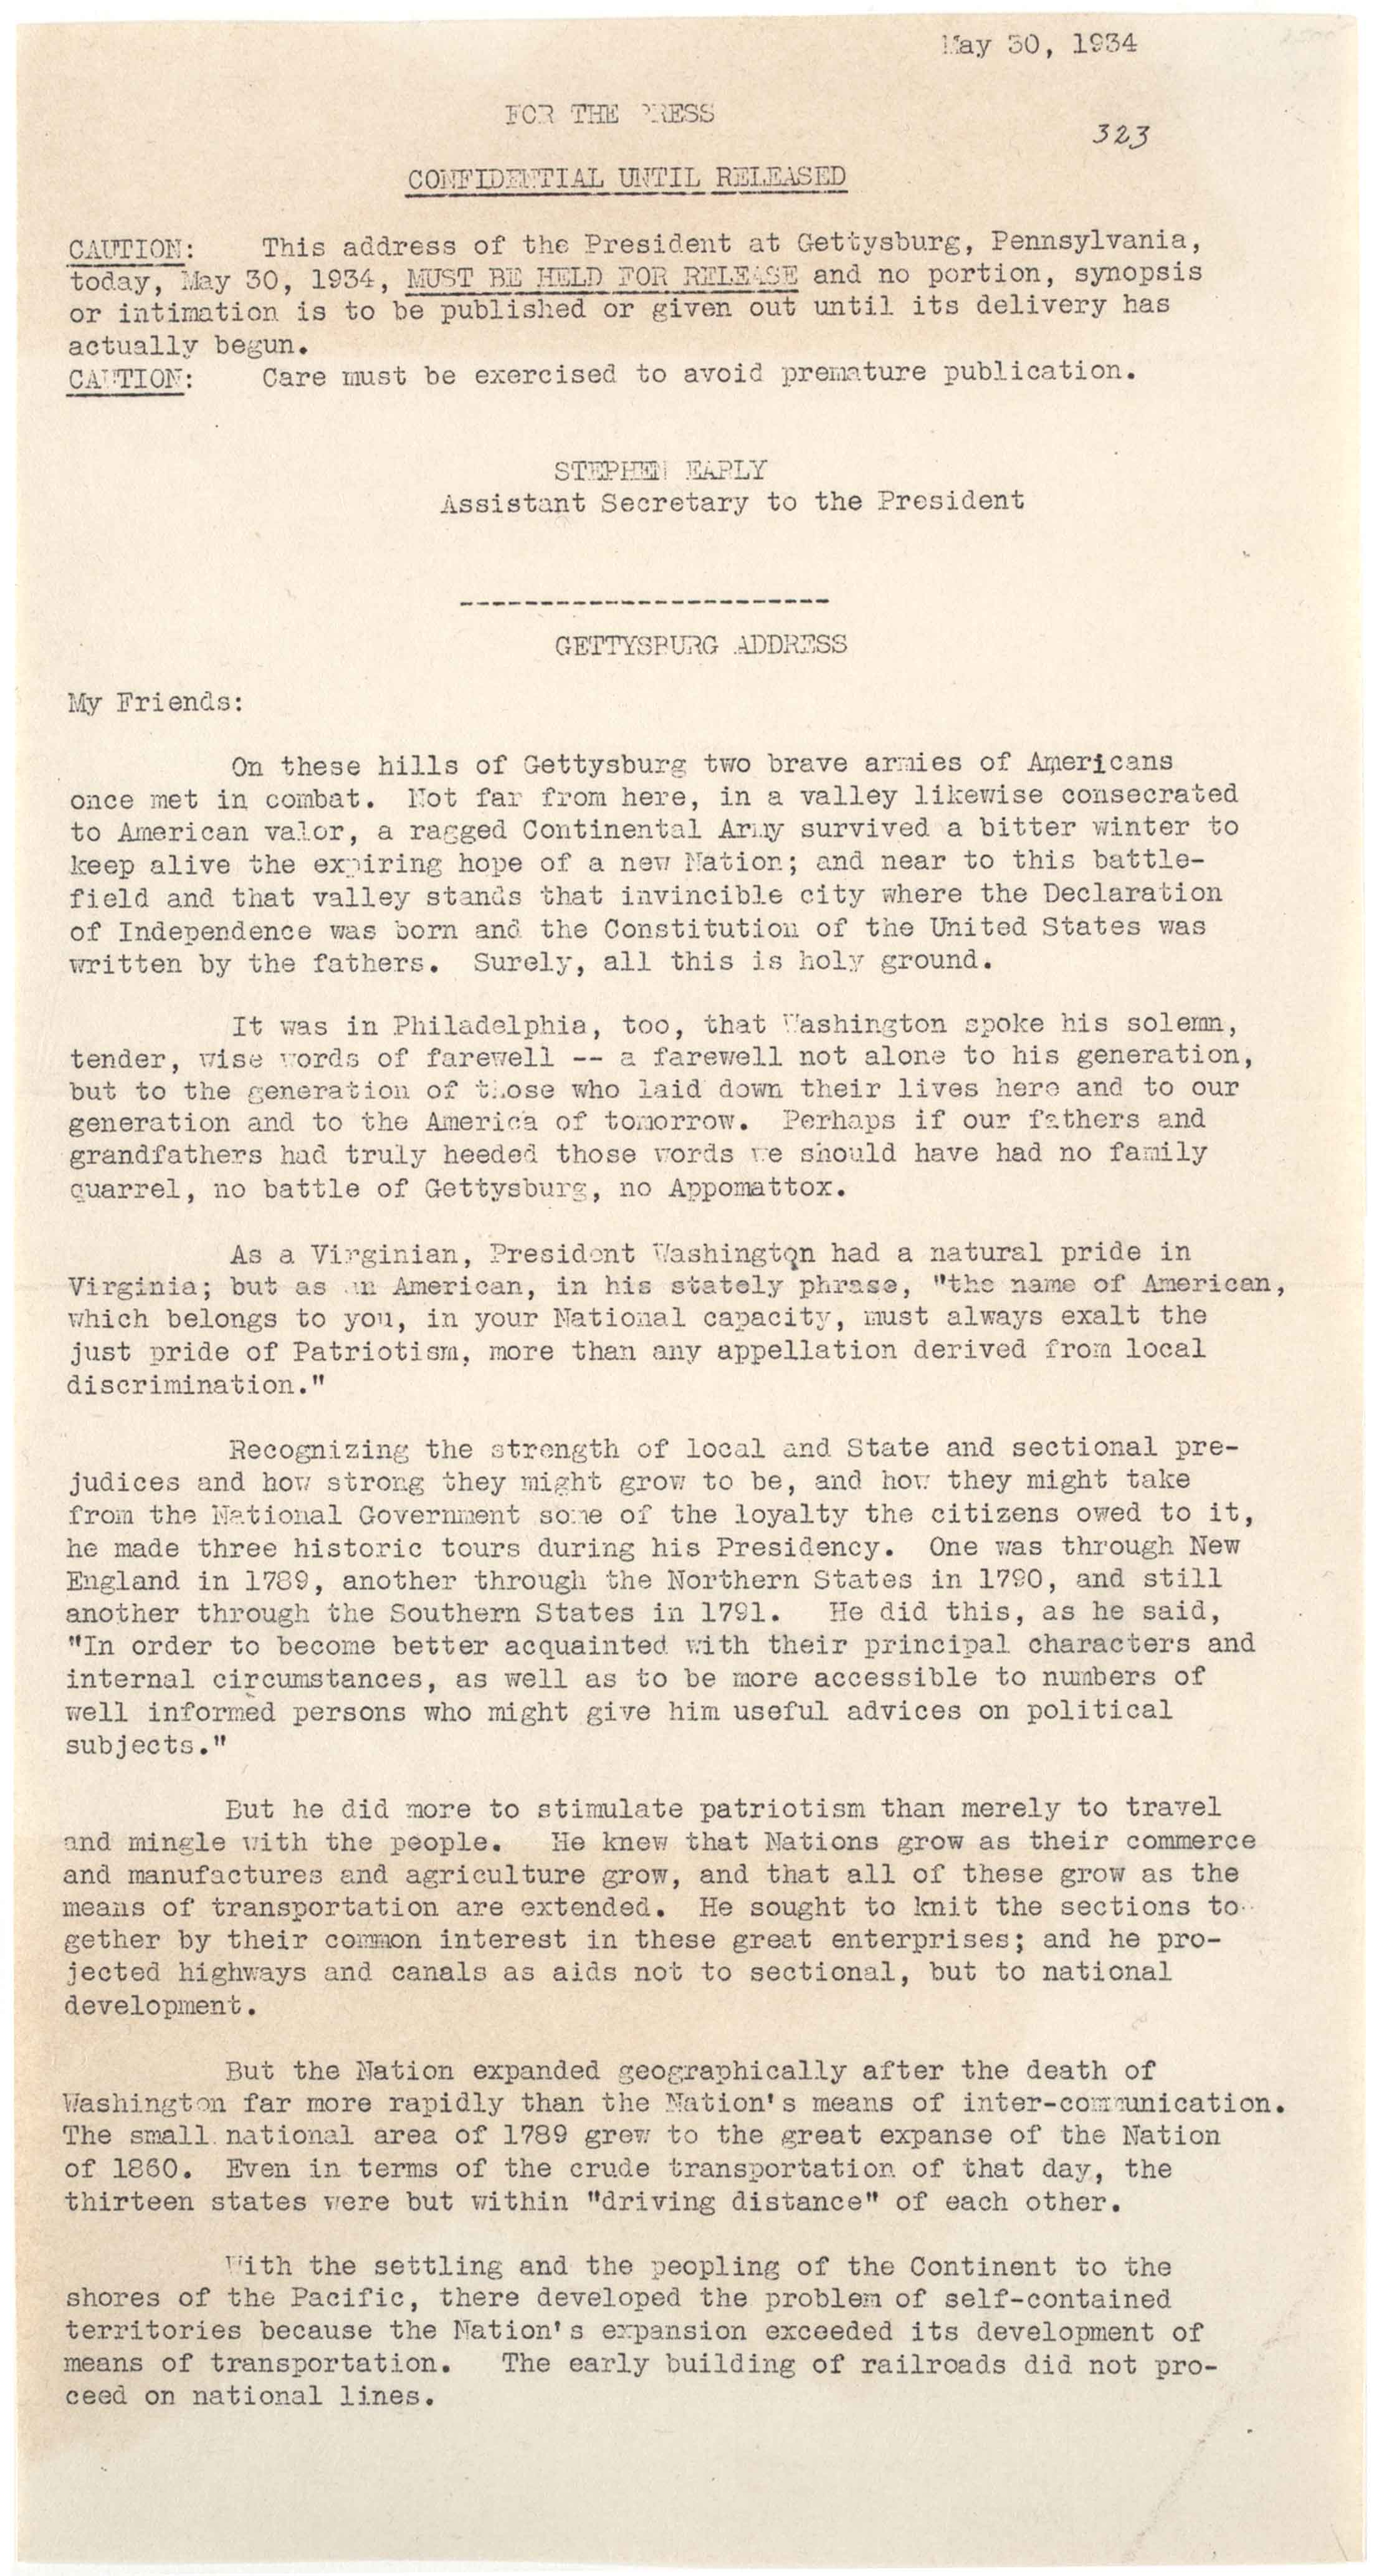 Franklin D. Roosevelt, [Press release of speech delivered on Memorial Day at Get